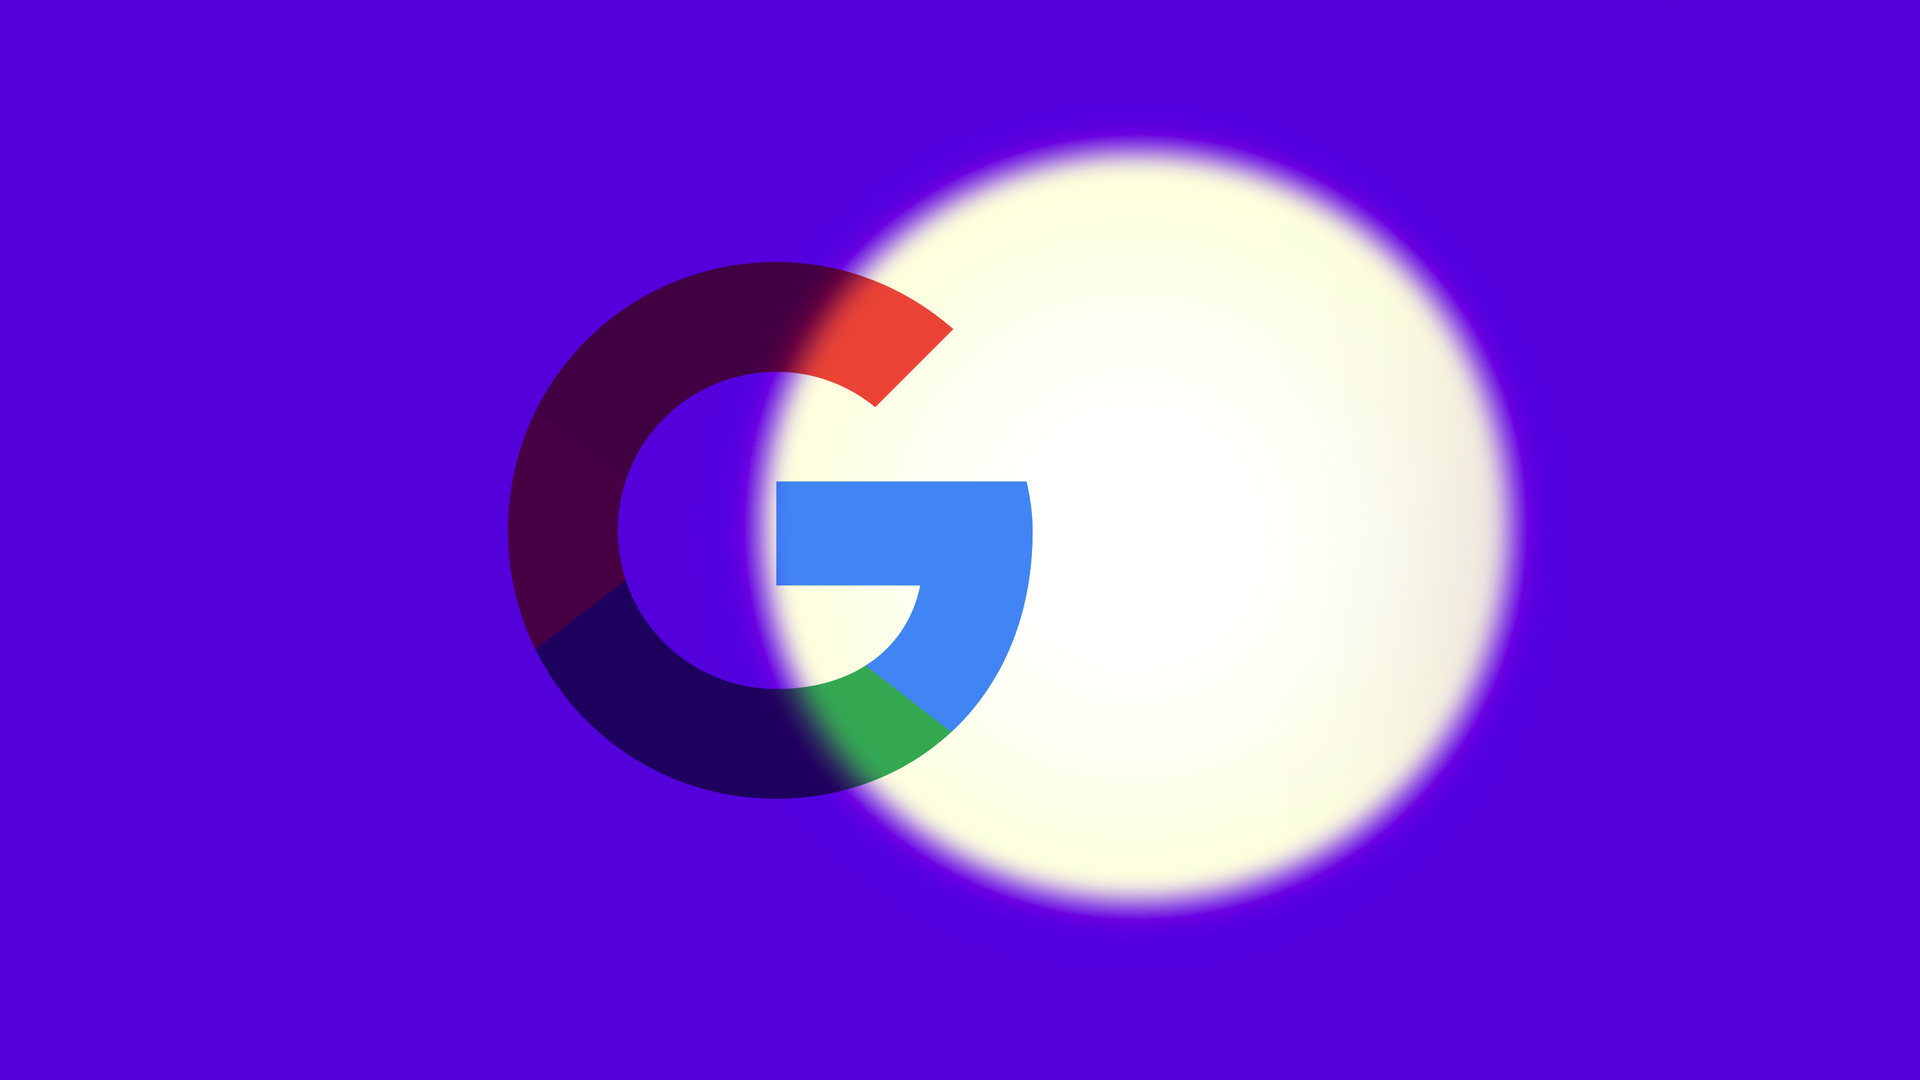 Illustration of a spotlight moving away from a Google logo